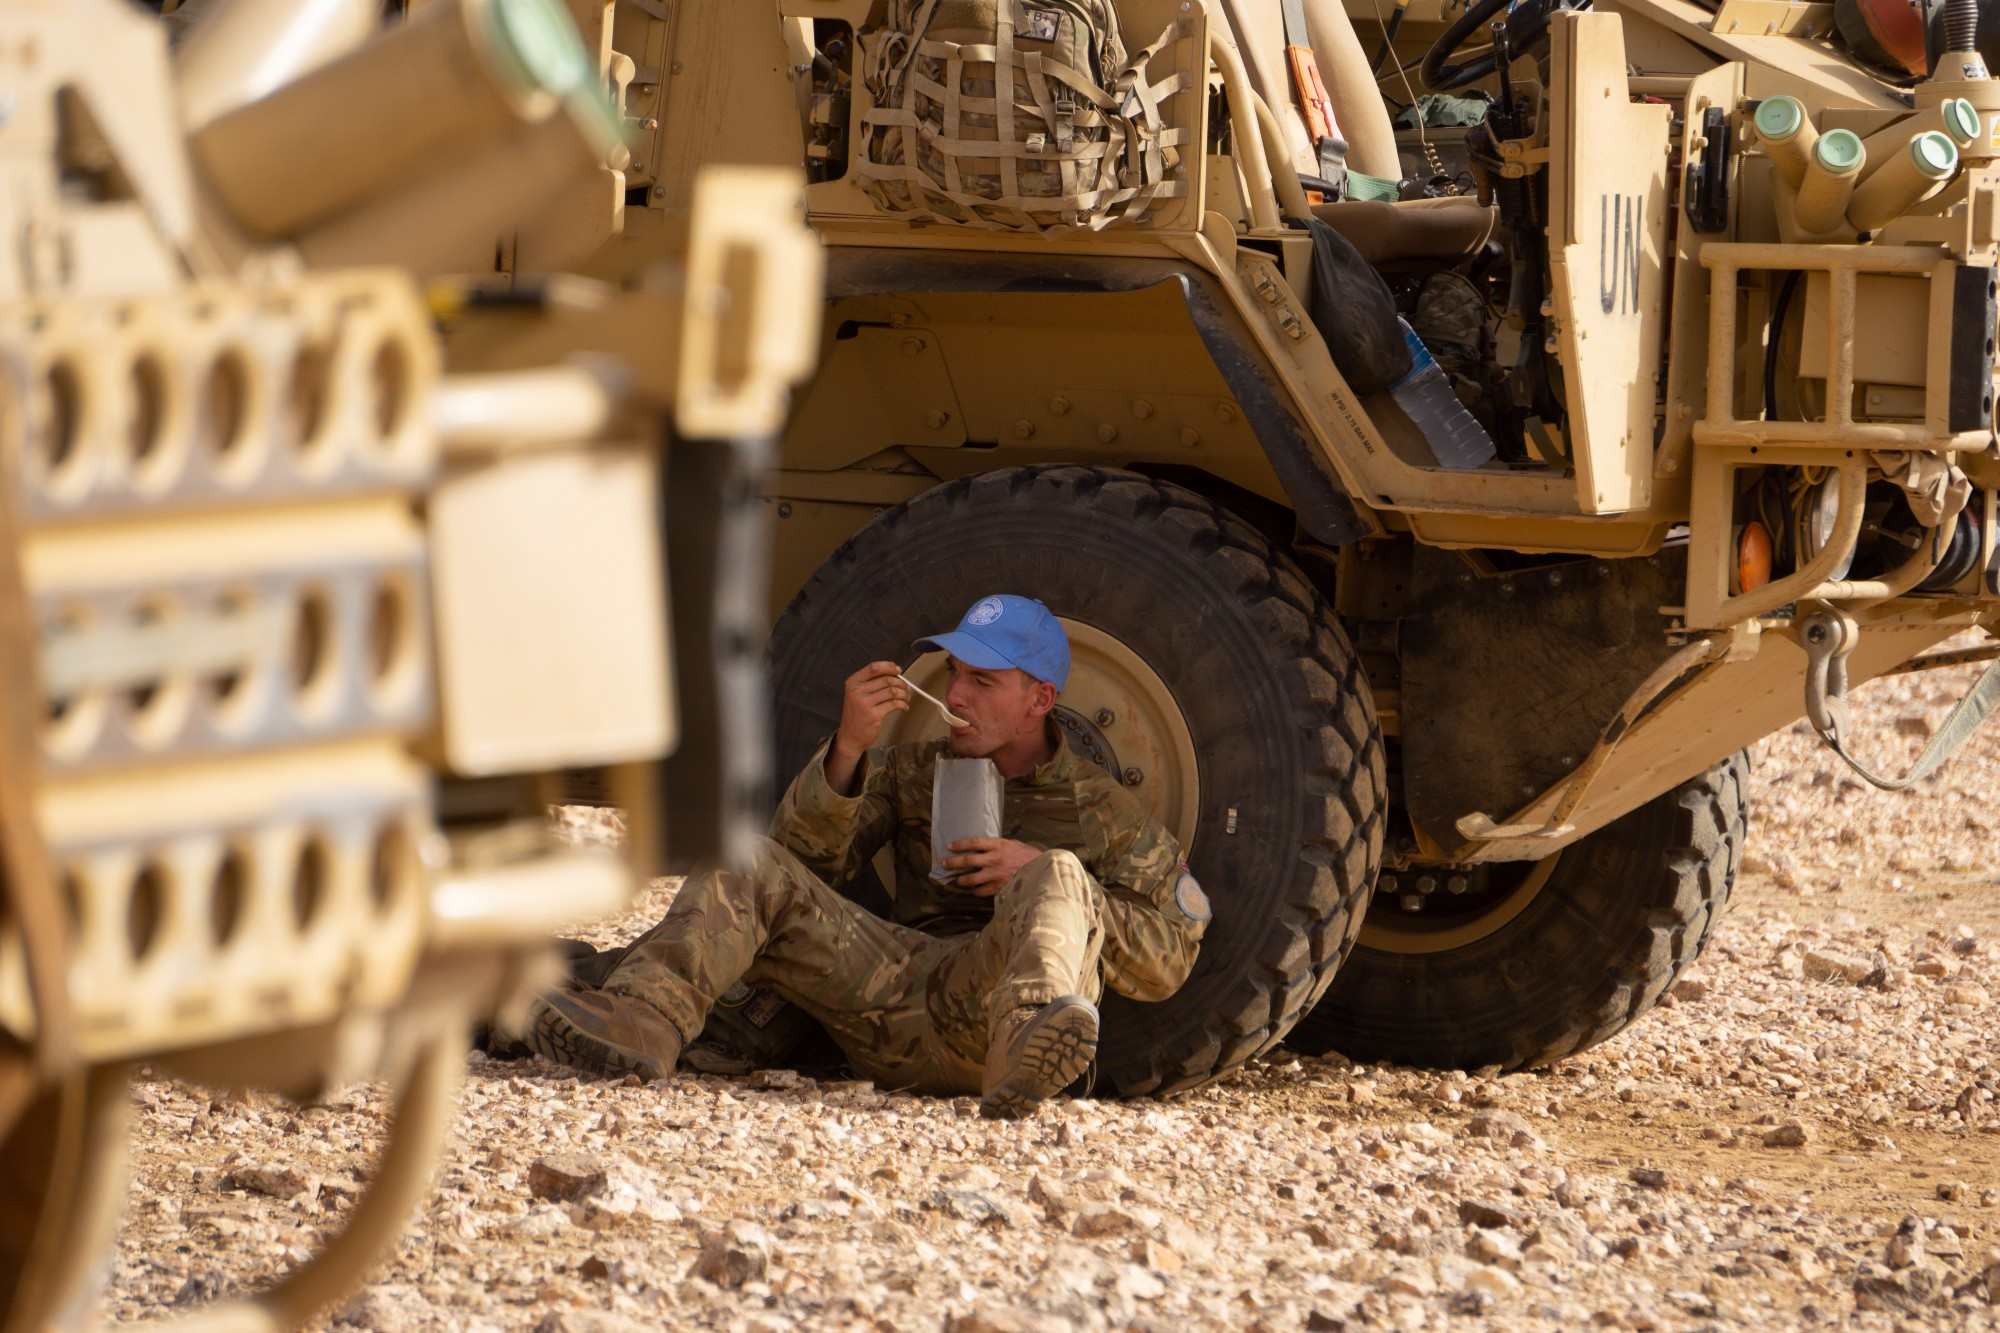 A British peacekeeper stops to eat his ration.